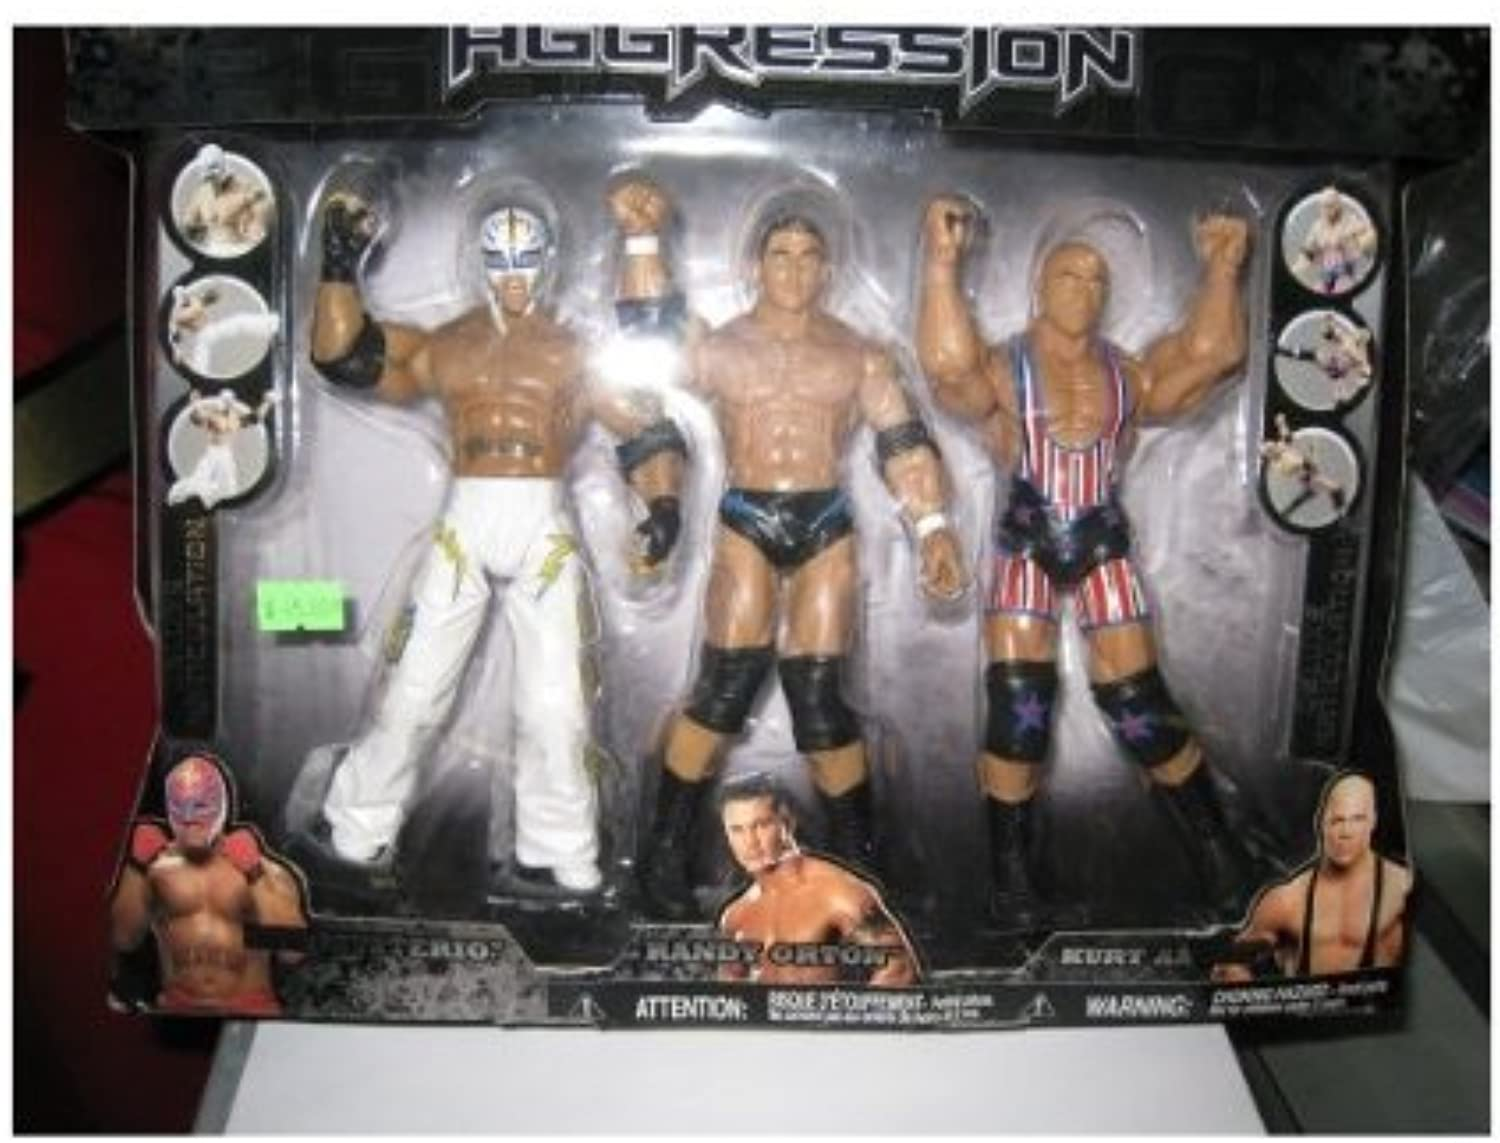 WWE DELUXE AGGRESSION EXCLUSIVE KB- REY MYSTERIO RANDY ORTON KURT ANGLE by Jakks Pacific